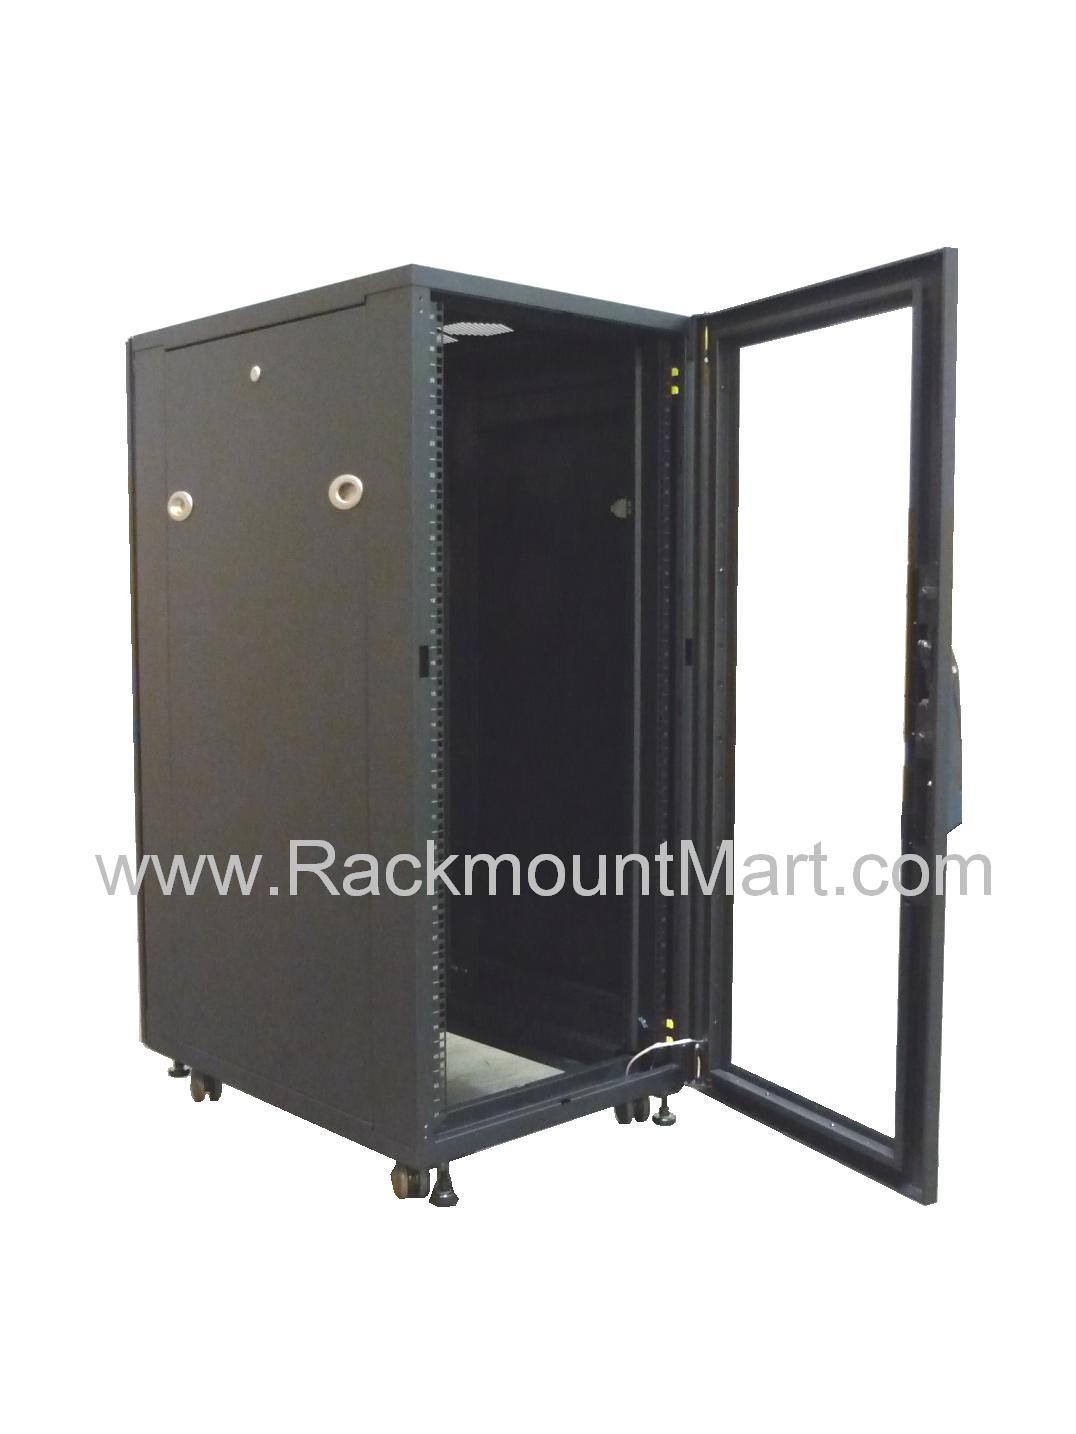 Cr1660 Cr1060 17u Equipment Rack Cabinet 870mm 34